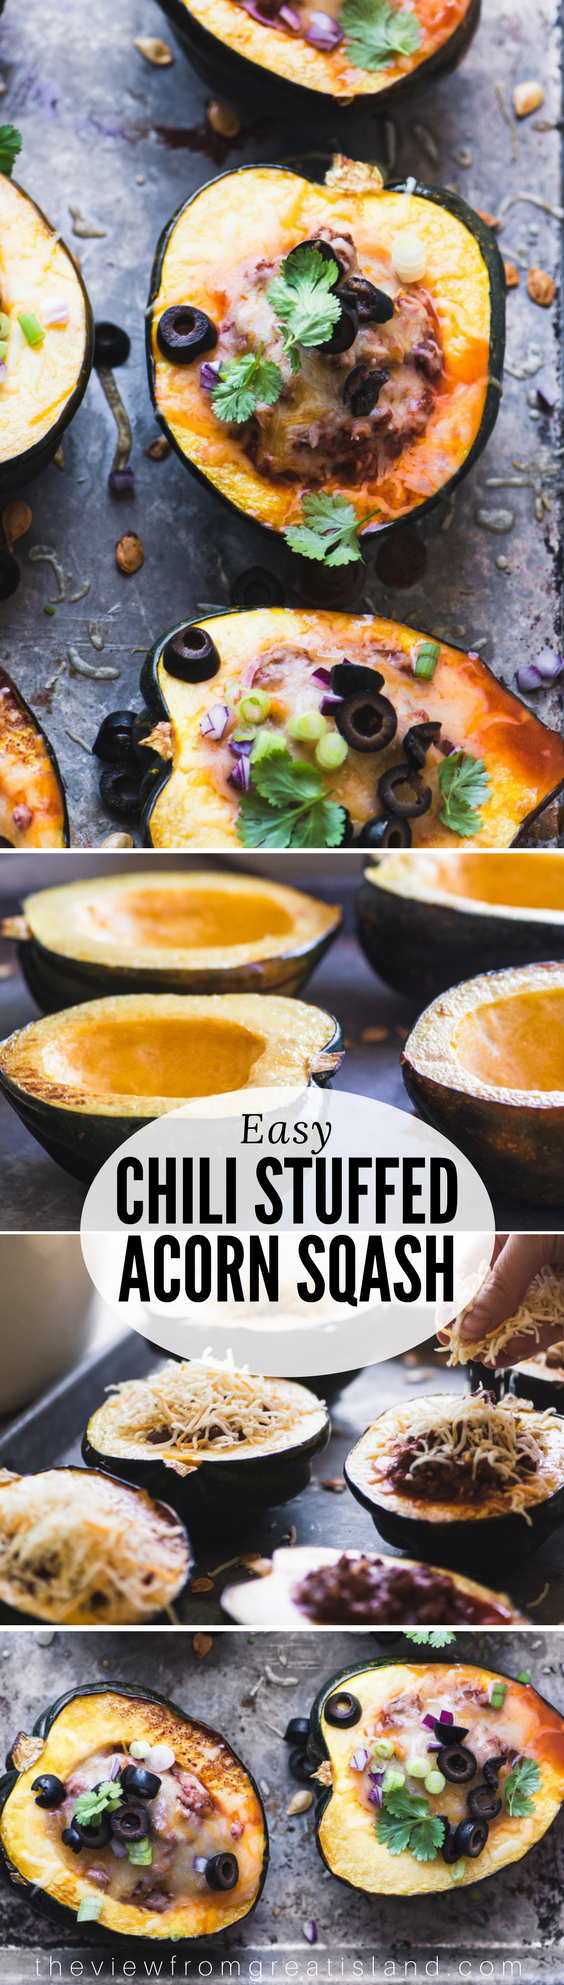 Chili Stuffed Acorn Squash ~ fall is finally in the air and I'm celebrating with the perfect meal for a chilly night. I'm using acorn squash as healthy little bowls for my best chili recipe! #chili #wintersquash #acornsquash #stuffedsquash #dinner #fall #healthychili #beef #groundbeef #falldinner #bestchili #glutenfree